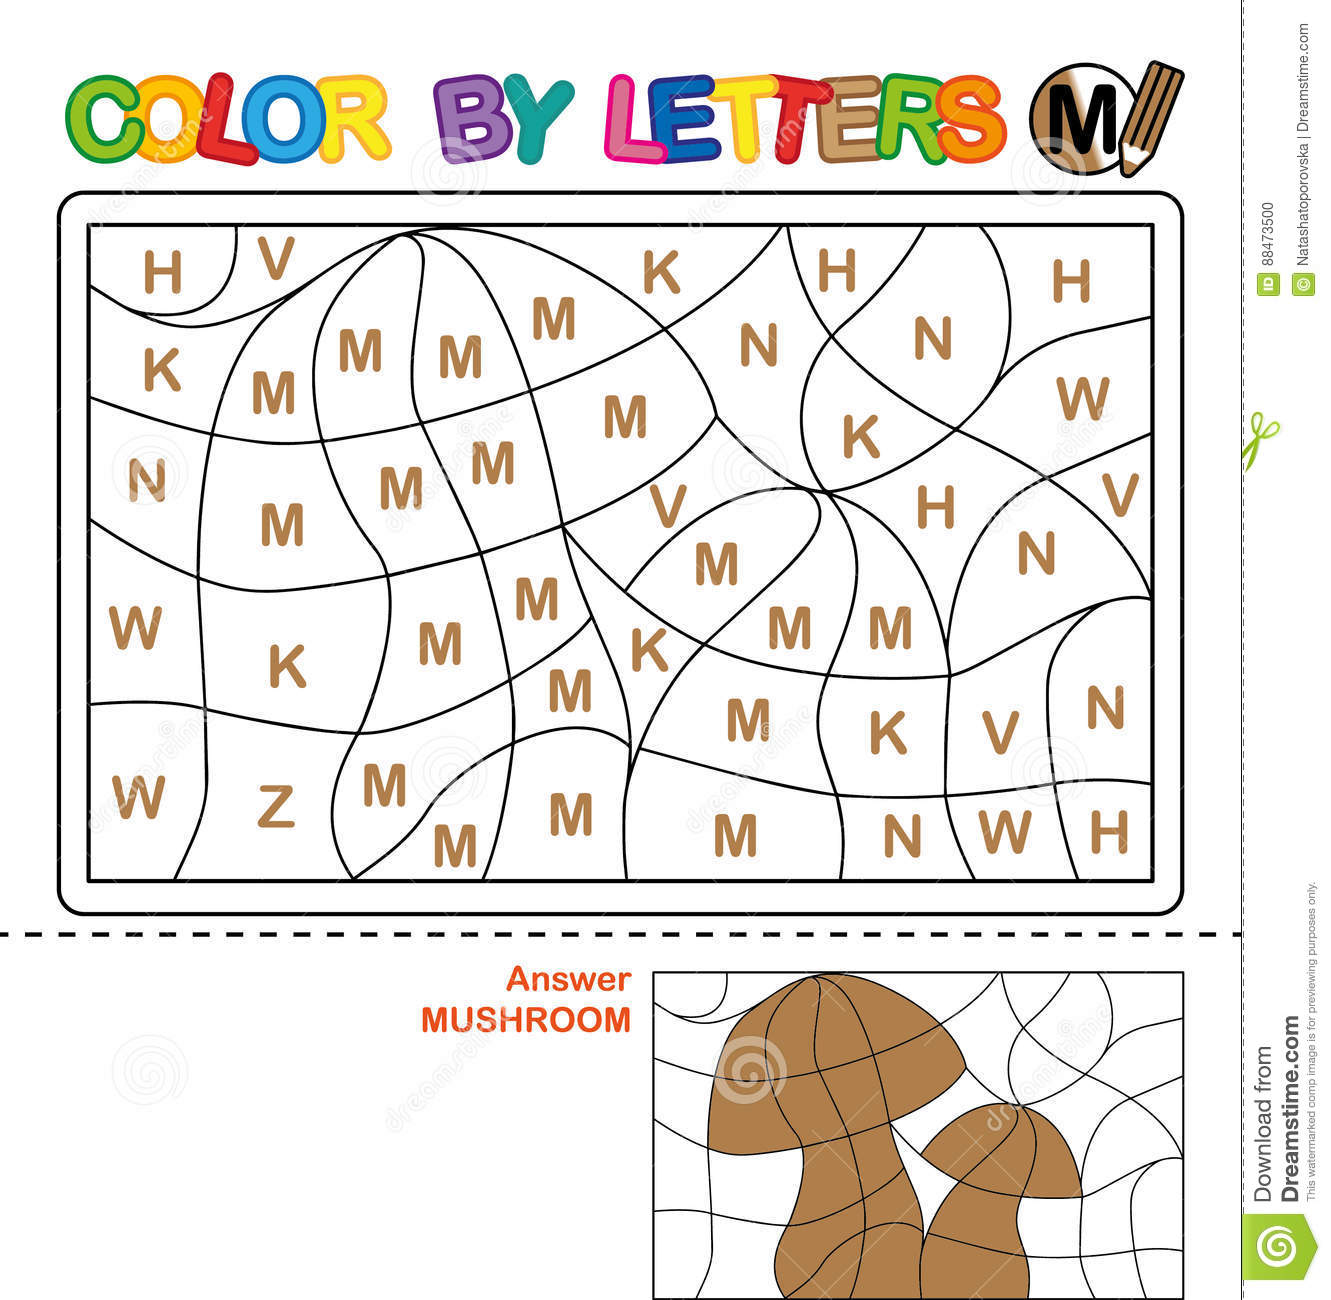 Color By Letter Puzzle For Children Mushroom Stock